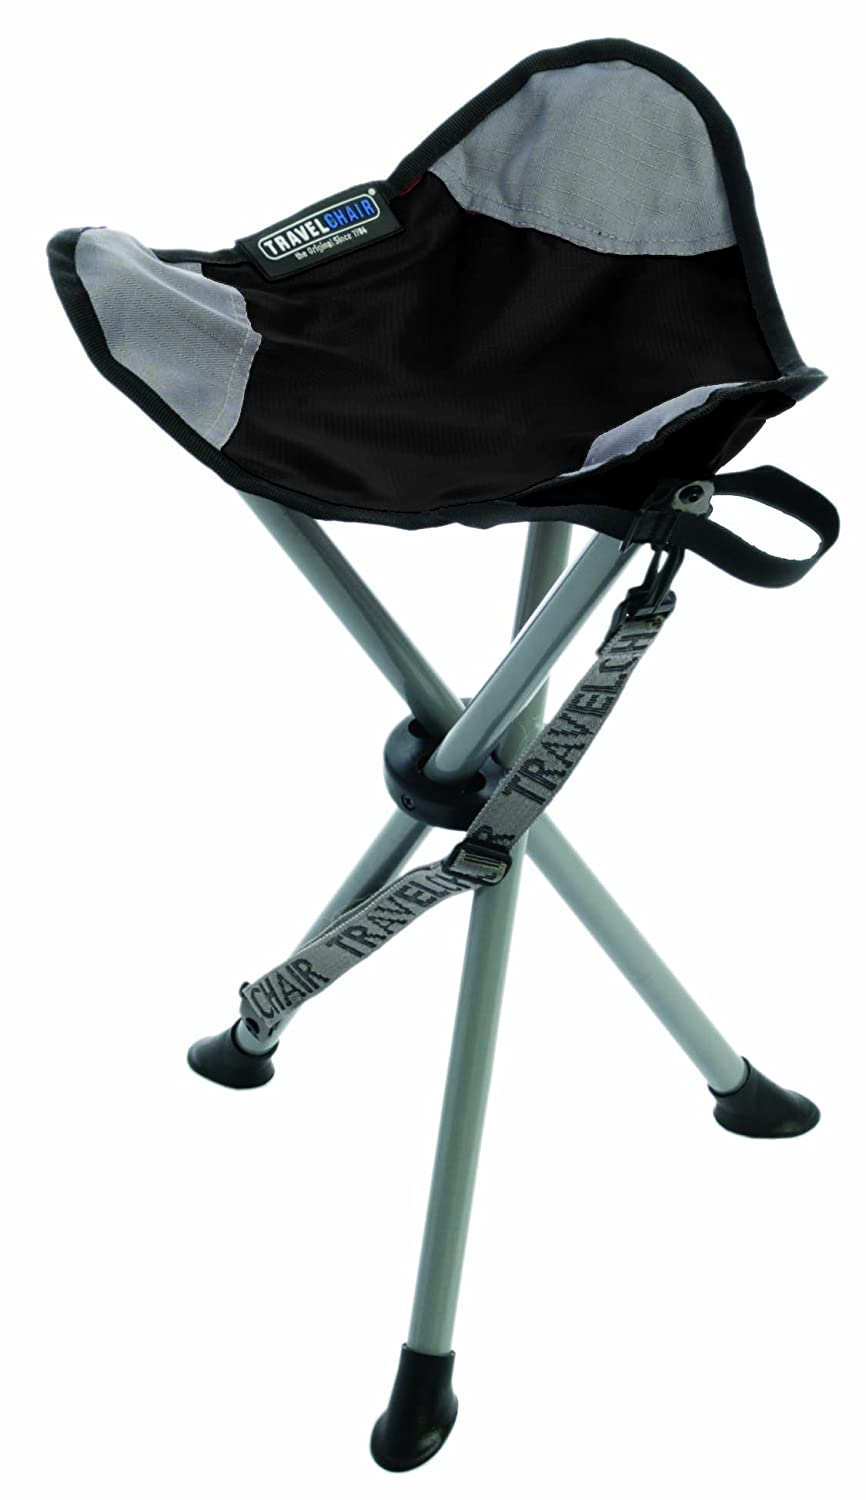 TravelChair Slacker Chair, Super Compact Best Hiking Stool